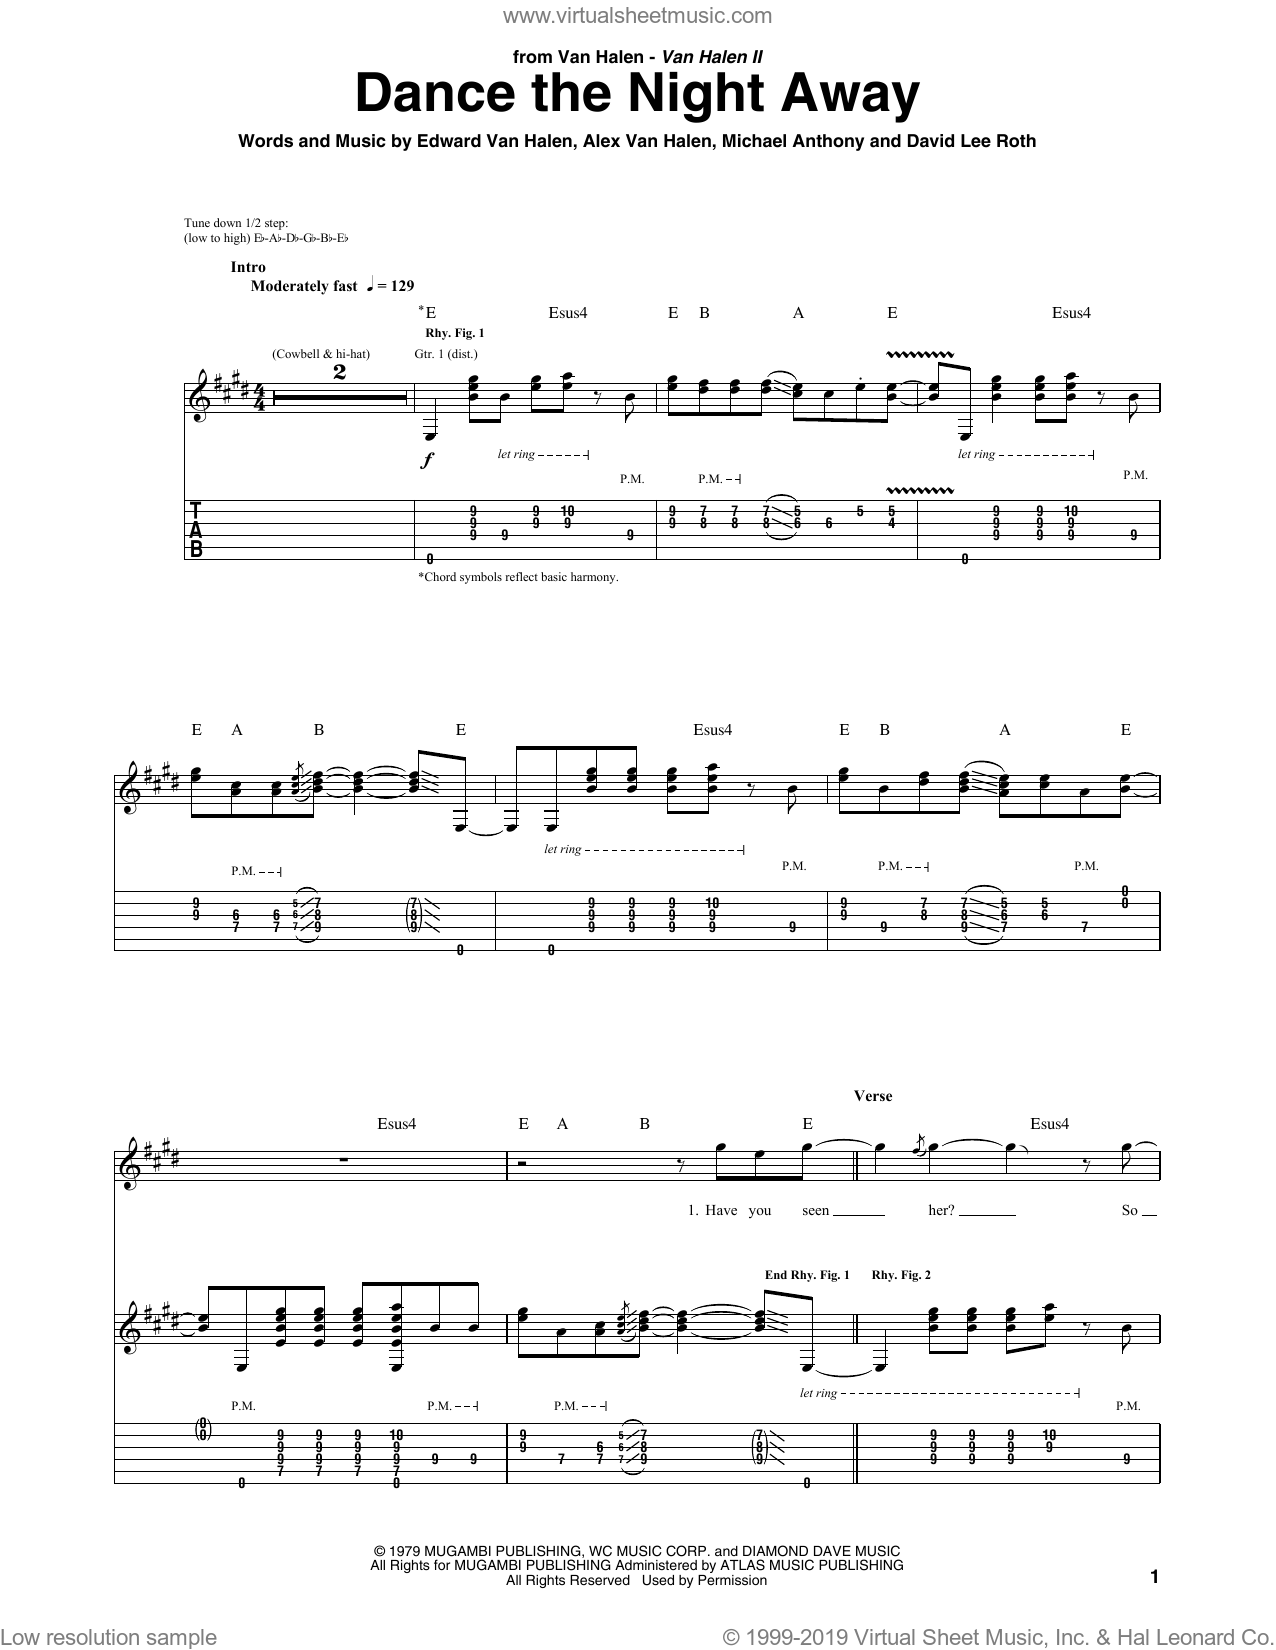 Dance The Night Away sheet music for guitar (tablature) by Edward Van Halen, Alex Van Halen, David Lee Roth and Michael Anthony. Score Image Preview.